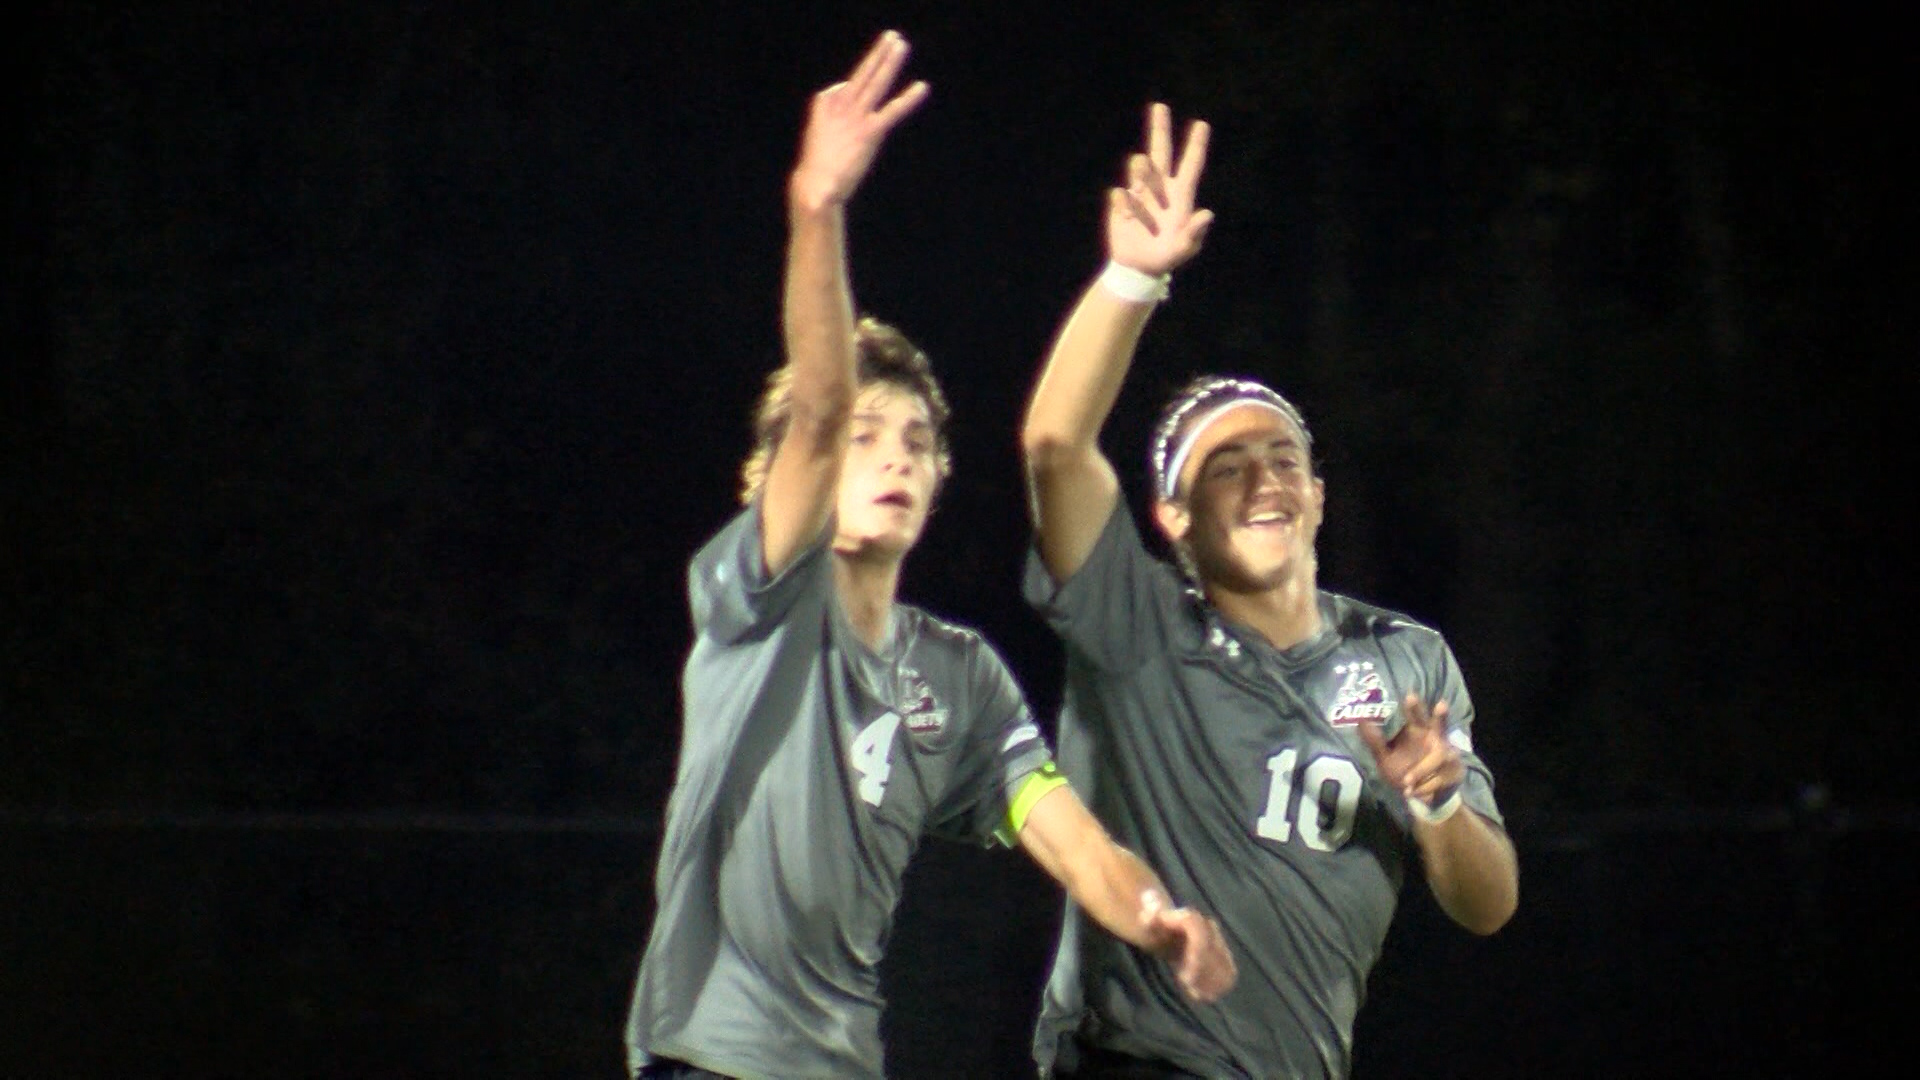 Cody Covuoto gets a hat trick as Hilton takes down Fairport 4-1